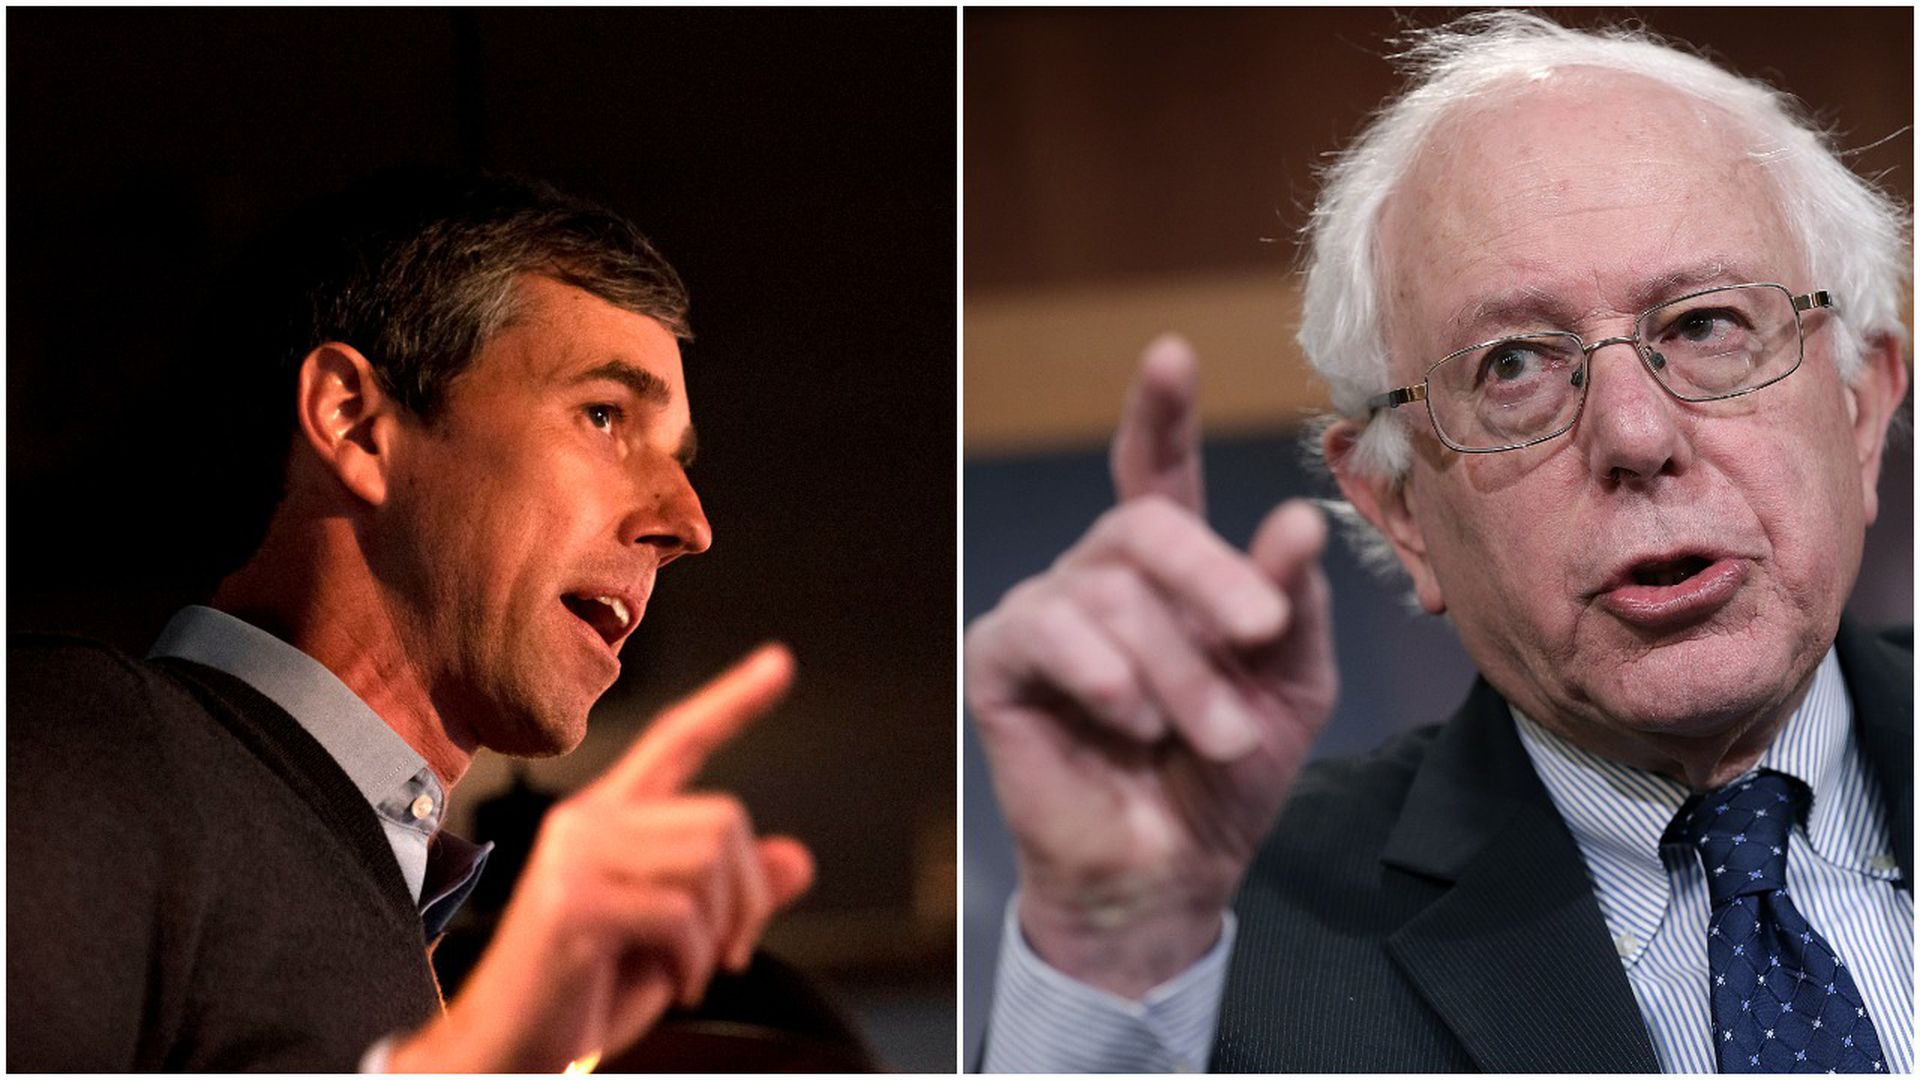 This is a two-way split screen between Bernie Sanders and Beto O'Rourke